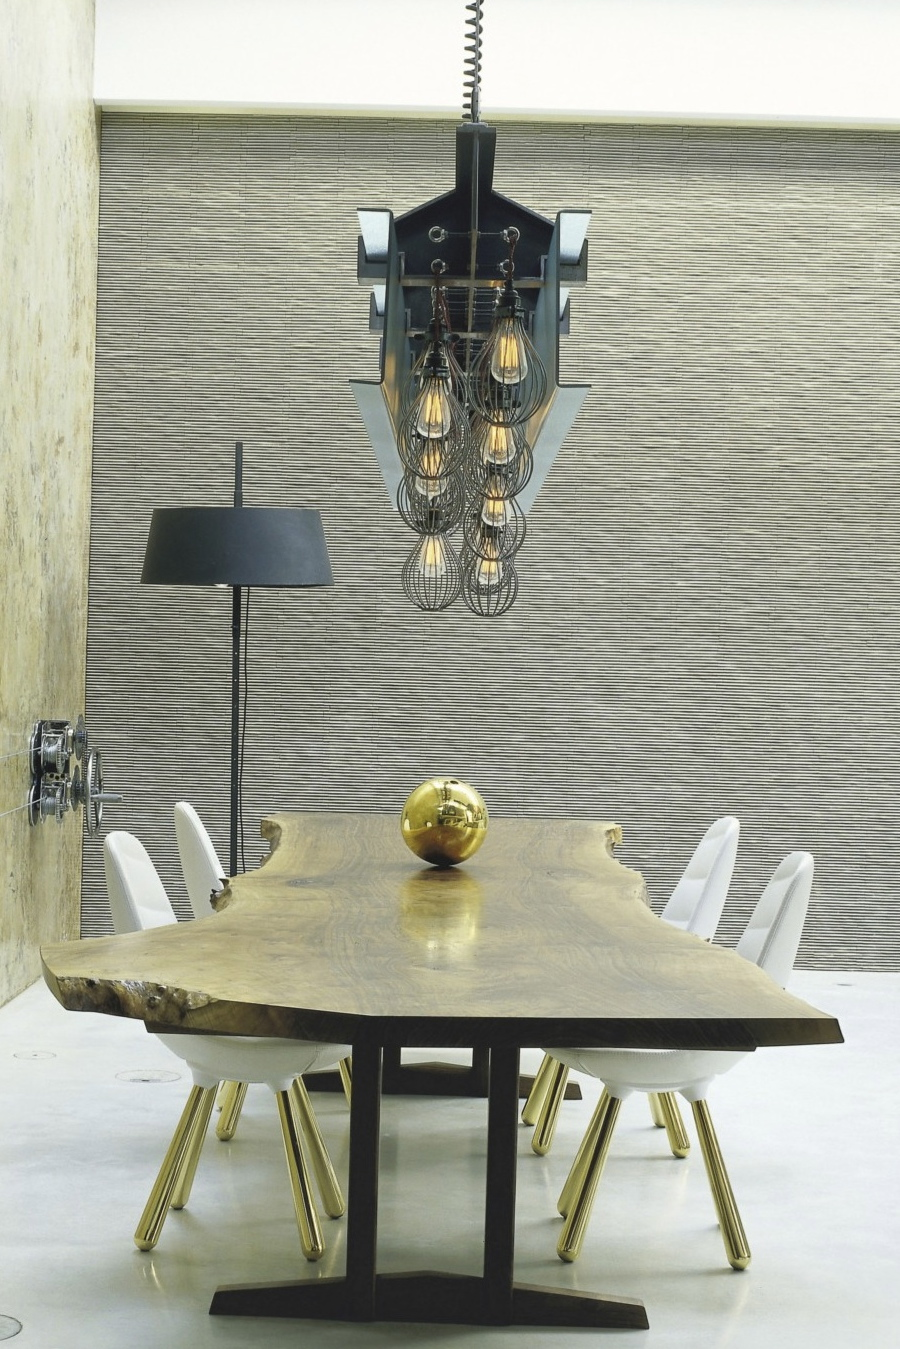 Factorylux cage lighting above the dining table